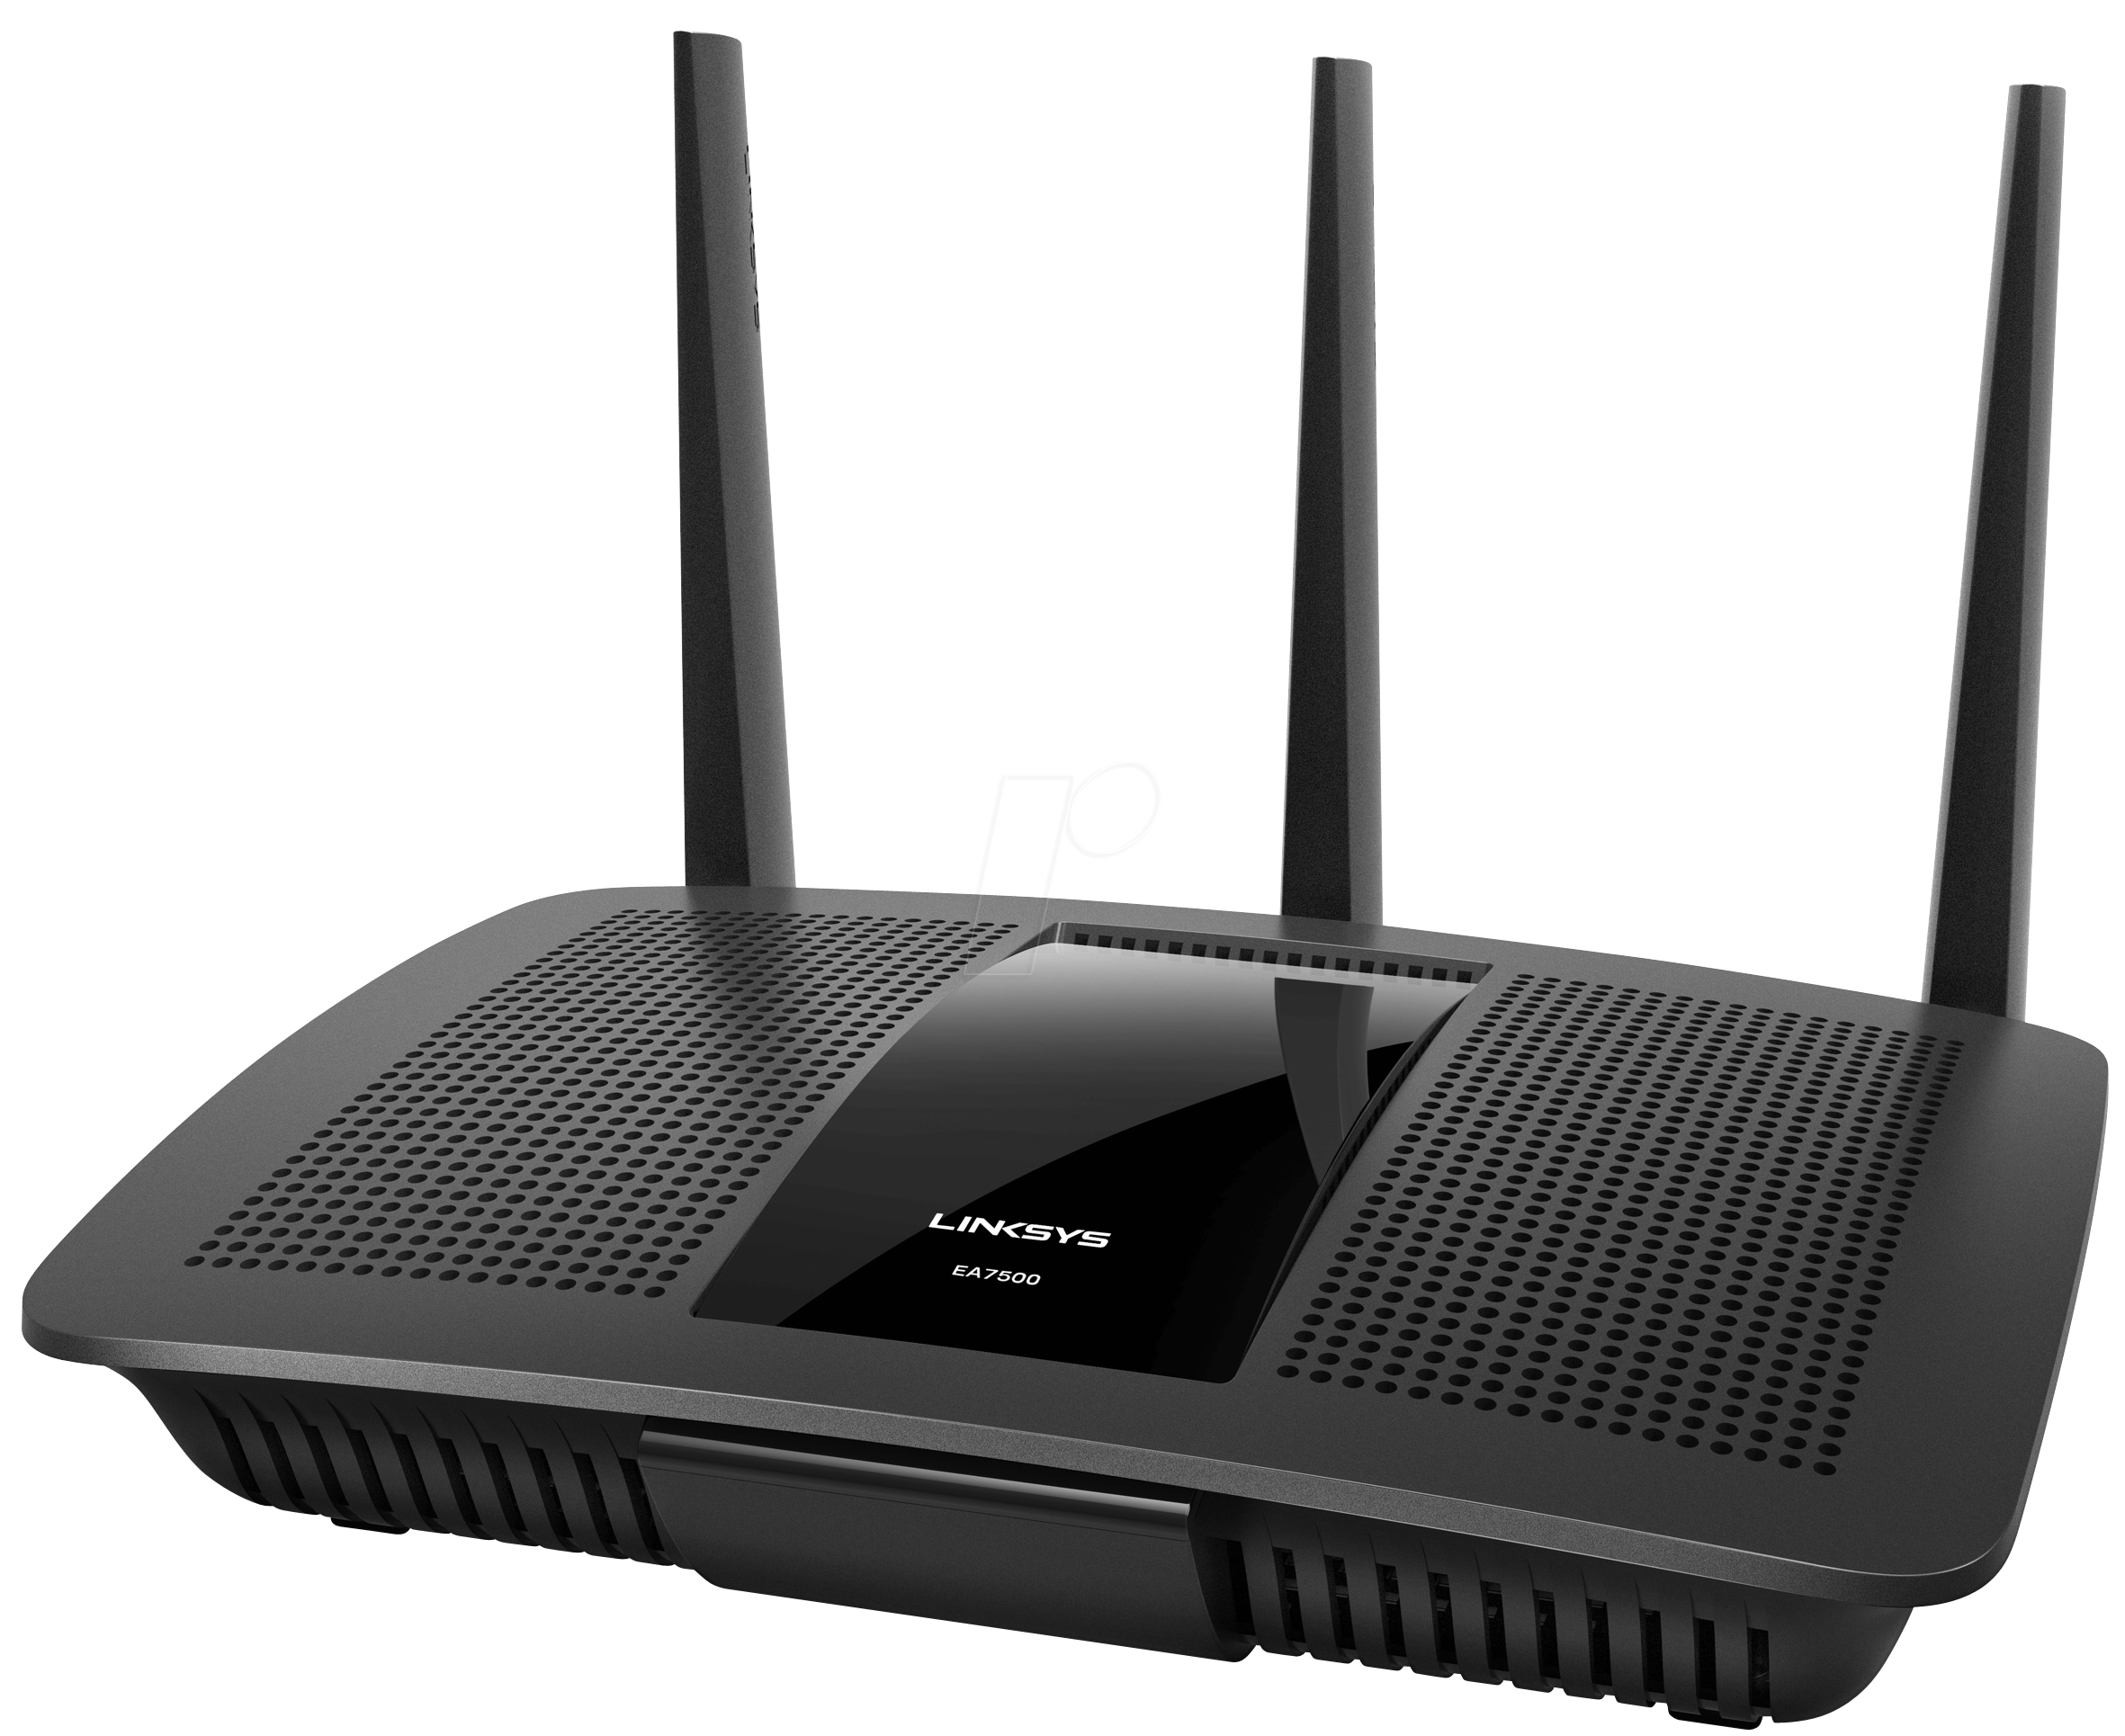 http myrouter.local Linksys Login